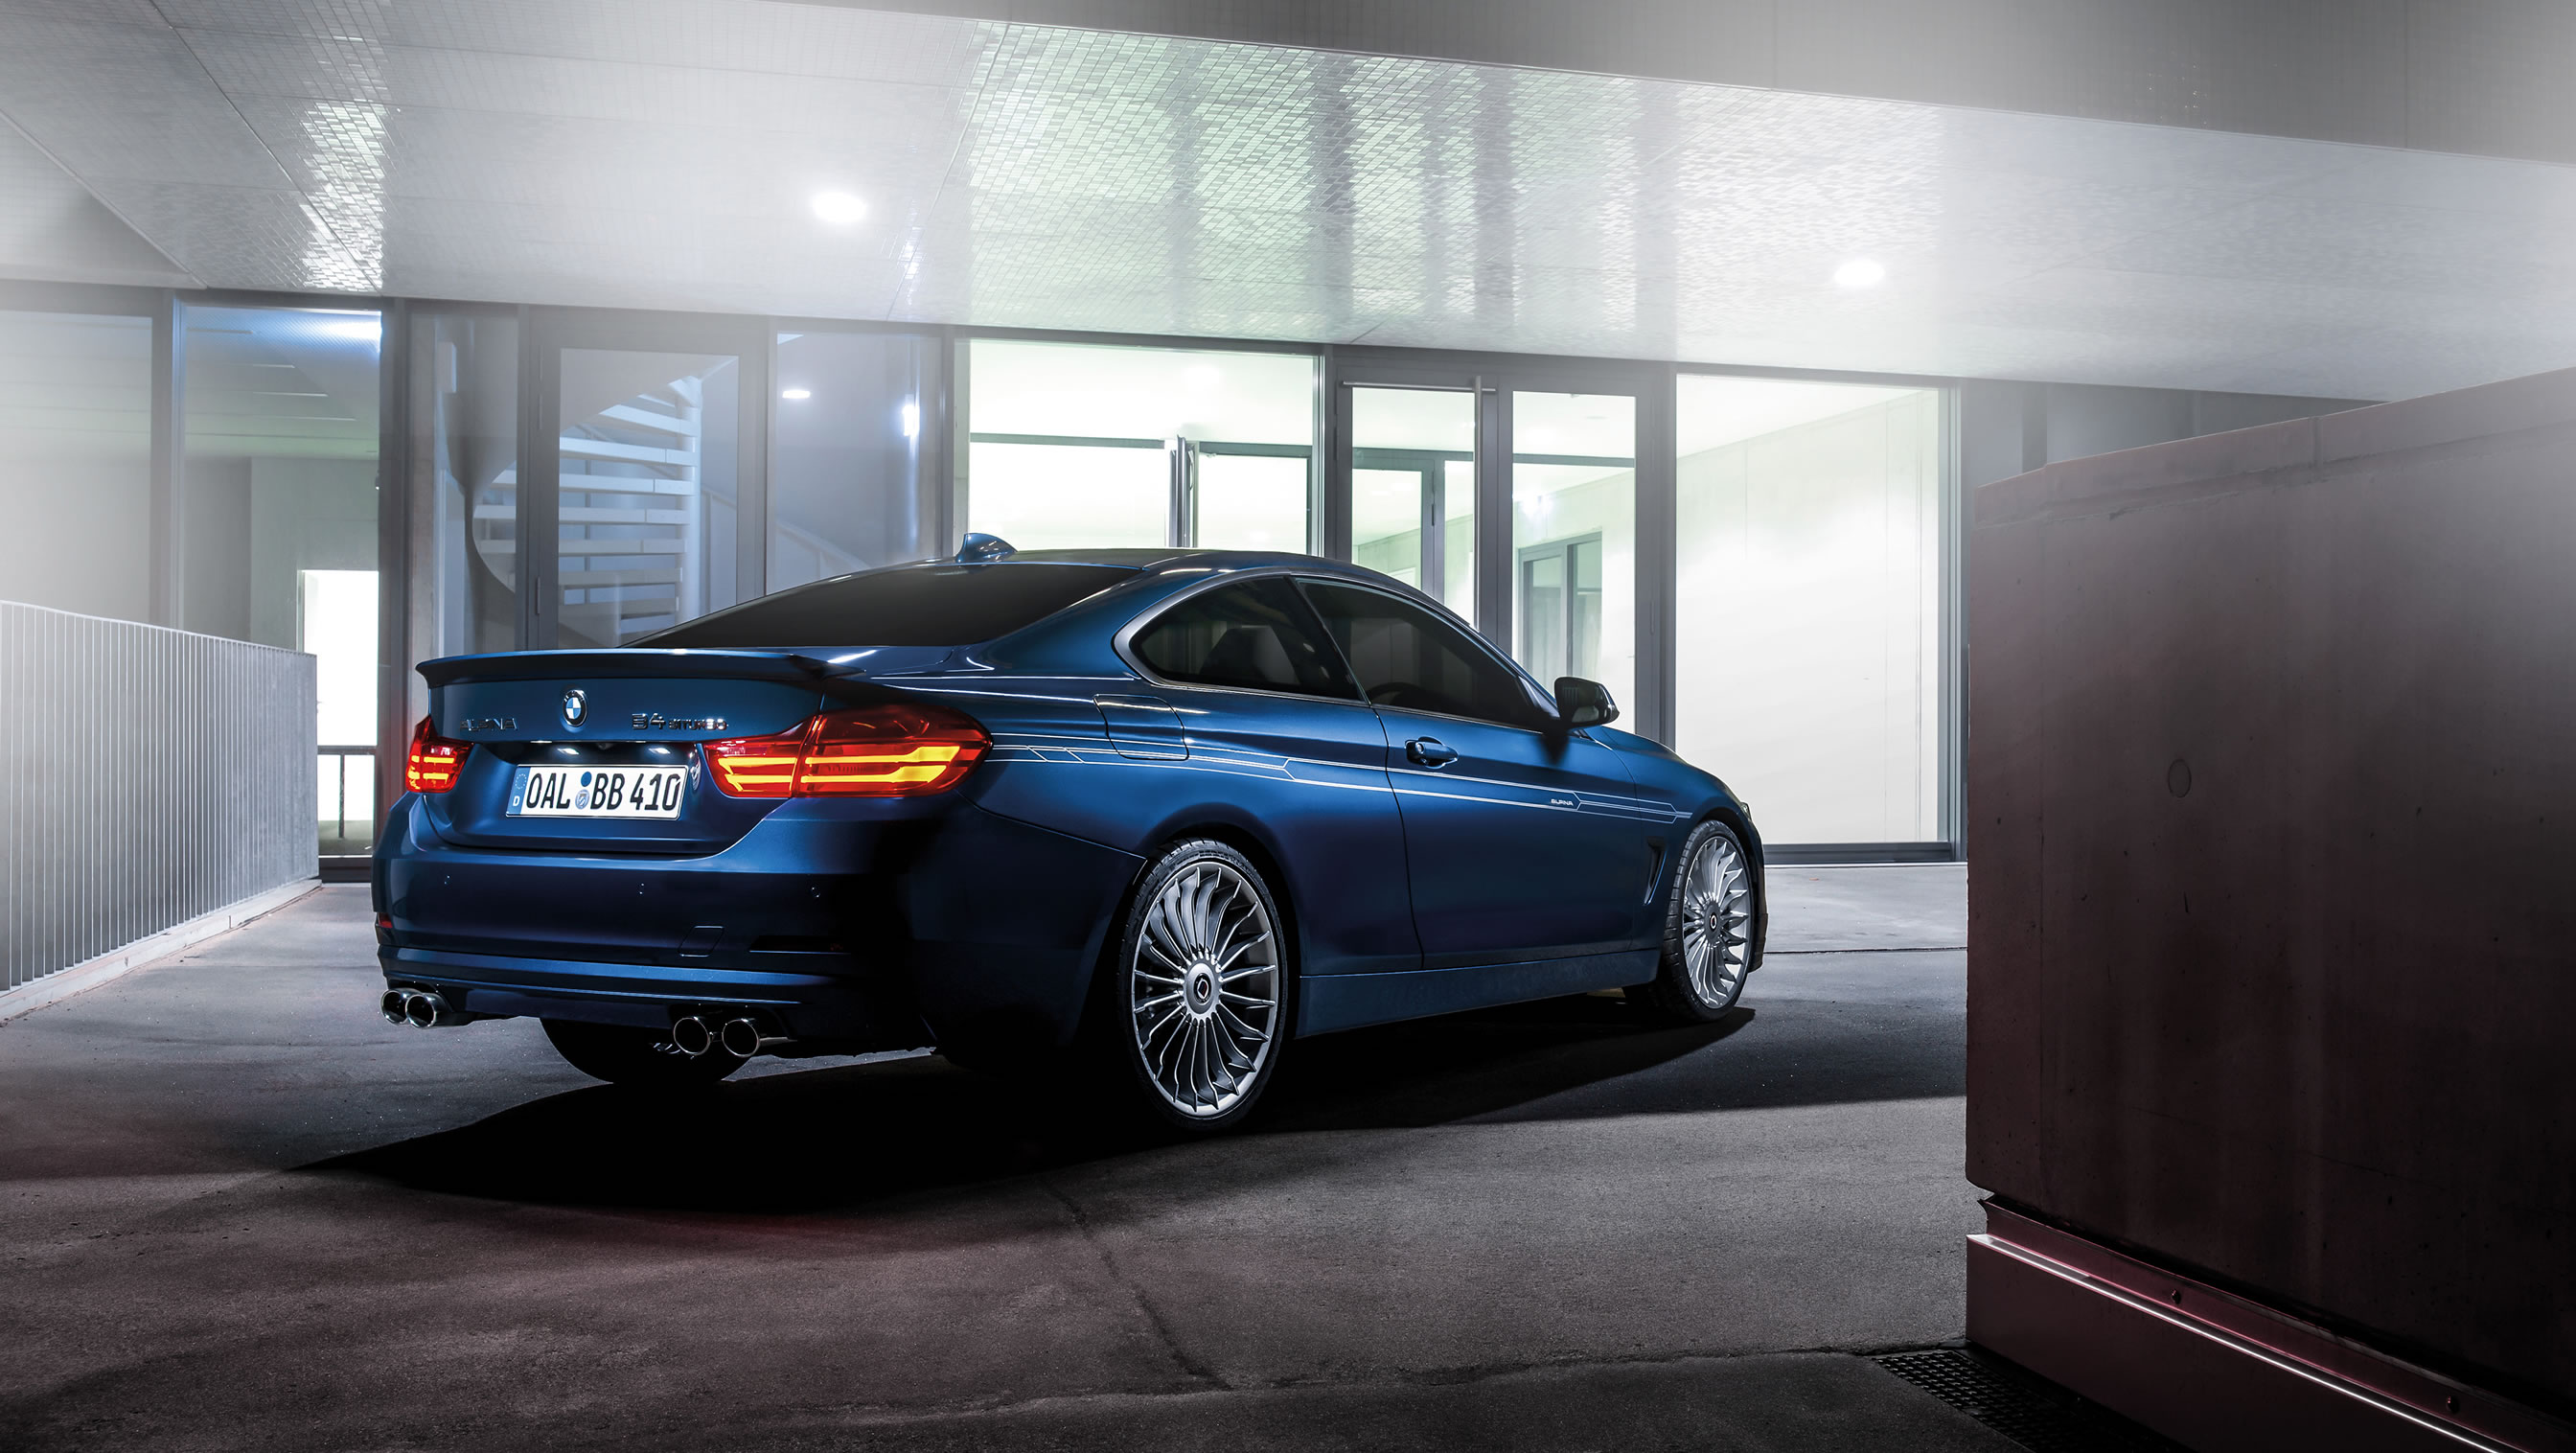 2014 alpina b4 biturbo photos specs and review rs. Black Bedroom Furniture Sets. Home Design Ideas